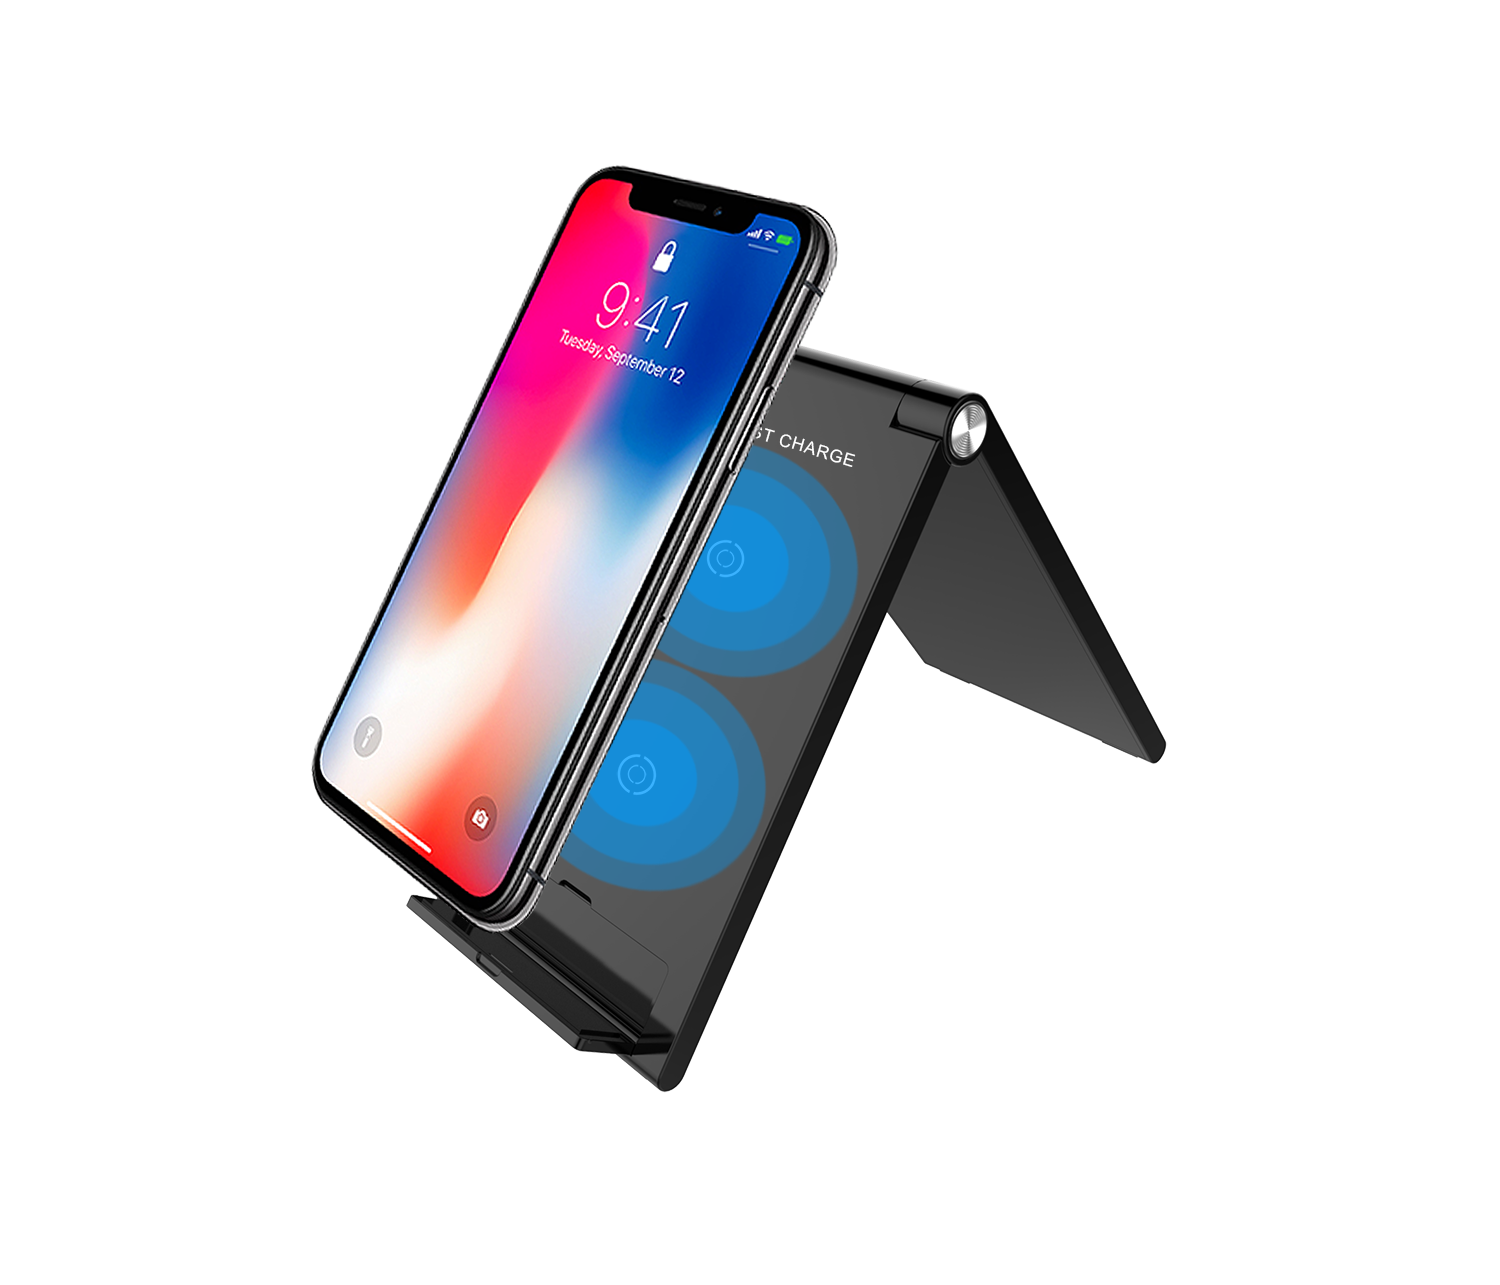 Quick Charge Qi Foldable Wireless Charger 10W Folding Desktop Wireless Charging Pad for iPhone X/XS 8 Samsung Note 9/8 S9/S8/S7     Compatibility:  1.Supports fast wireless charging phone models:  * for Sumsung Galaxy S6 / S6 Edge / S6 Edge Plus / S7 / S7 Edge / S8 / S8 Plus / S9 / S9 Plus / Note 5 / Note 8,etc     2.Supports wireless charging phone models:  * for iPhone 8 / 8 plus / x / xs / xs max /xr  * for Nokia / LG /Google / HTC / Sharp / Motorola / ZTE some models.     3.Other devices please buy a wireless charging receiver separately.  Note: If you need fast charging function , we recommend using 5V/2A or 9V/1.67A adapter at least.        Product nameFoldable Wireless charger stand Output Power5w--7.5W Special Featureswireless stand multi-function Voltage5V 2A,9v 1.67A Weight112g SuitableiPhone Xs/Xr/Xs Max, for Samsung for Galaxy S9/S9+ such smart devices.for iwatach/for airpod Function 1 Fast charger Function 2QI Wireless stand Function 3office table pad and stand